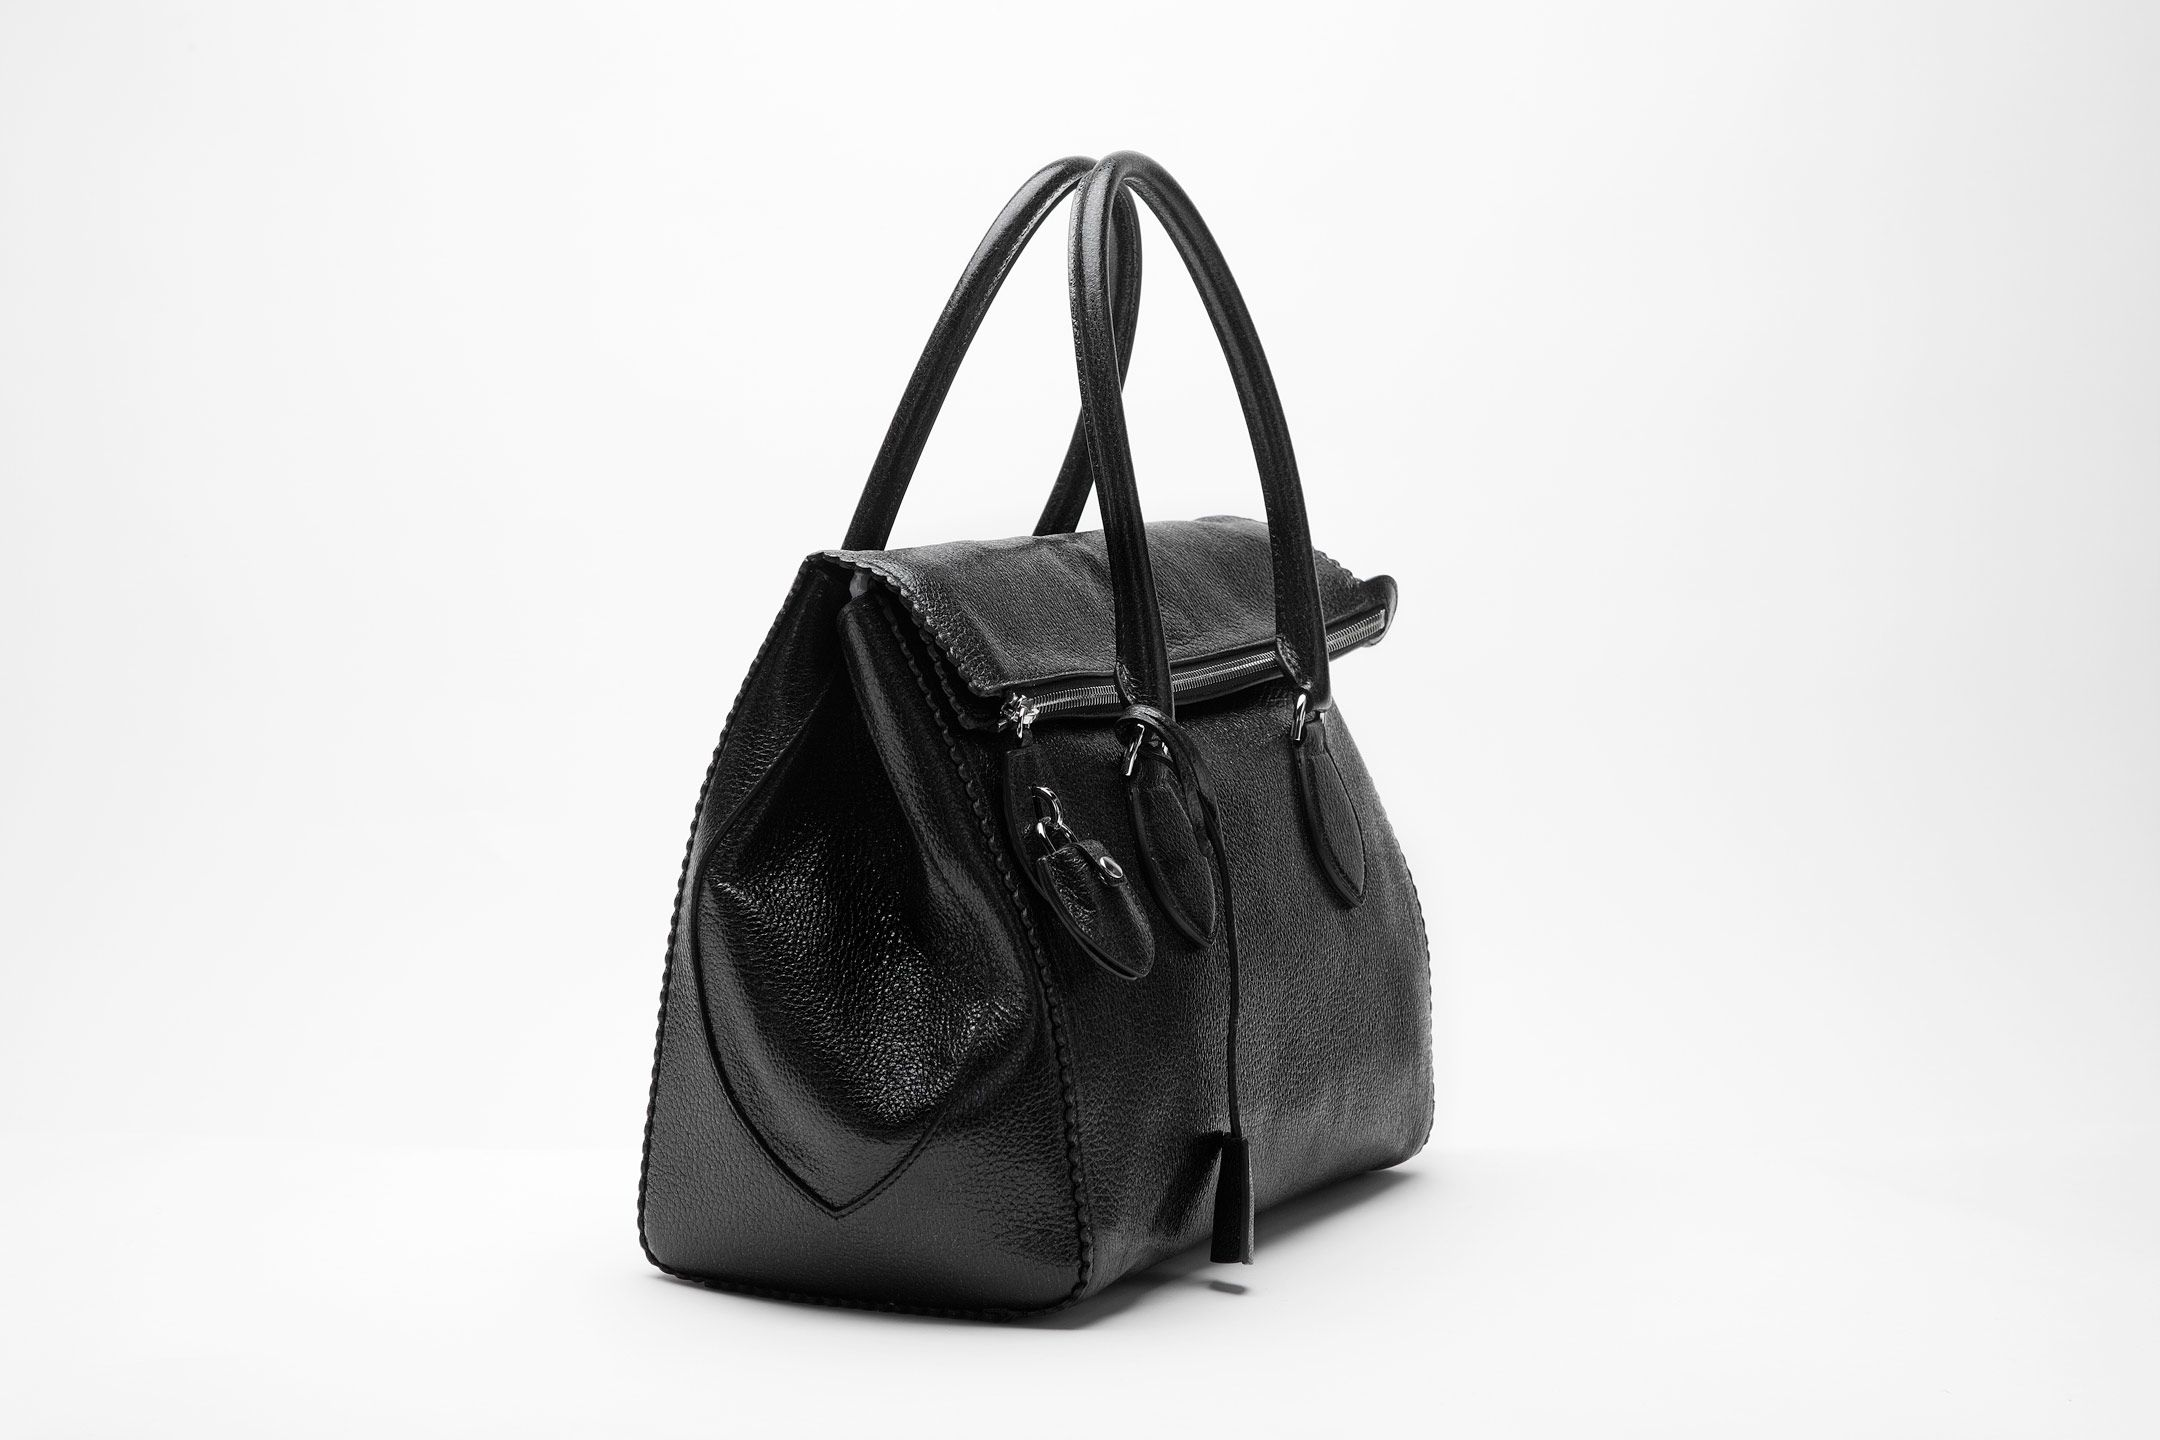 Made Entirely From The Finest Deerskin Rochas Bag In Black Is Ideal Statement Luxury Paris Modewalk